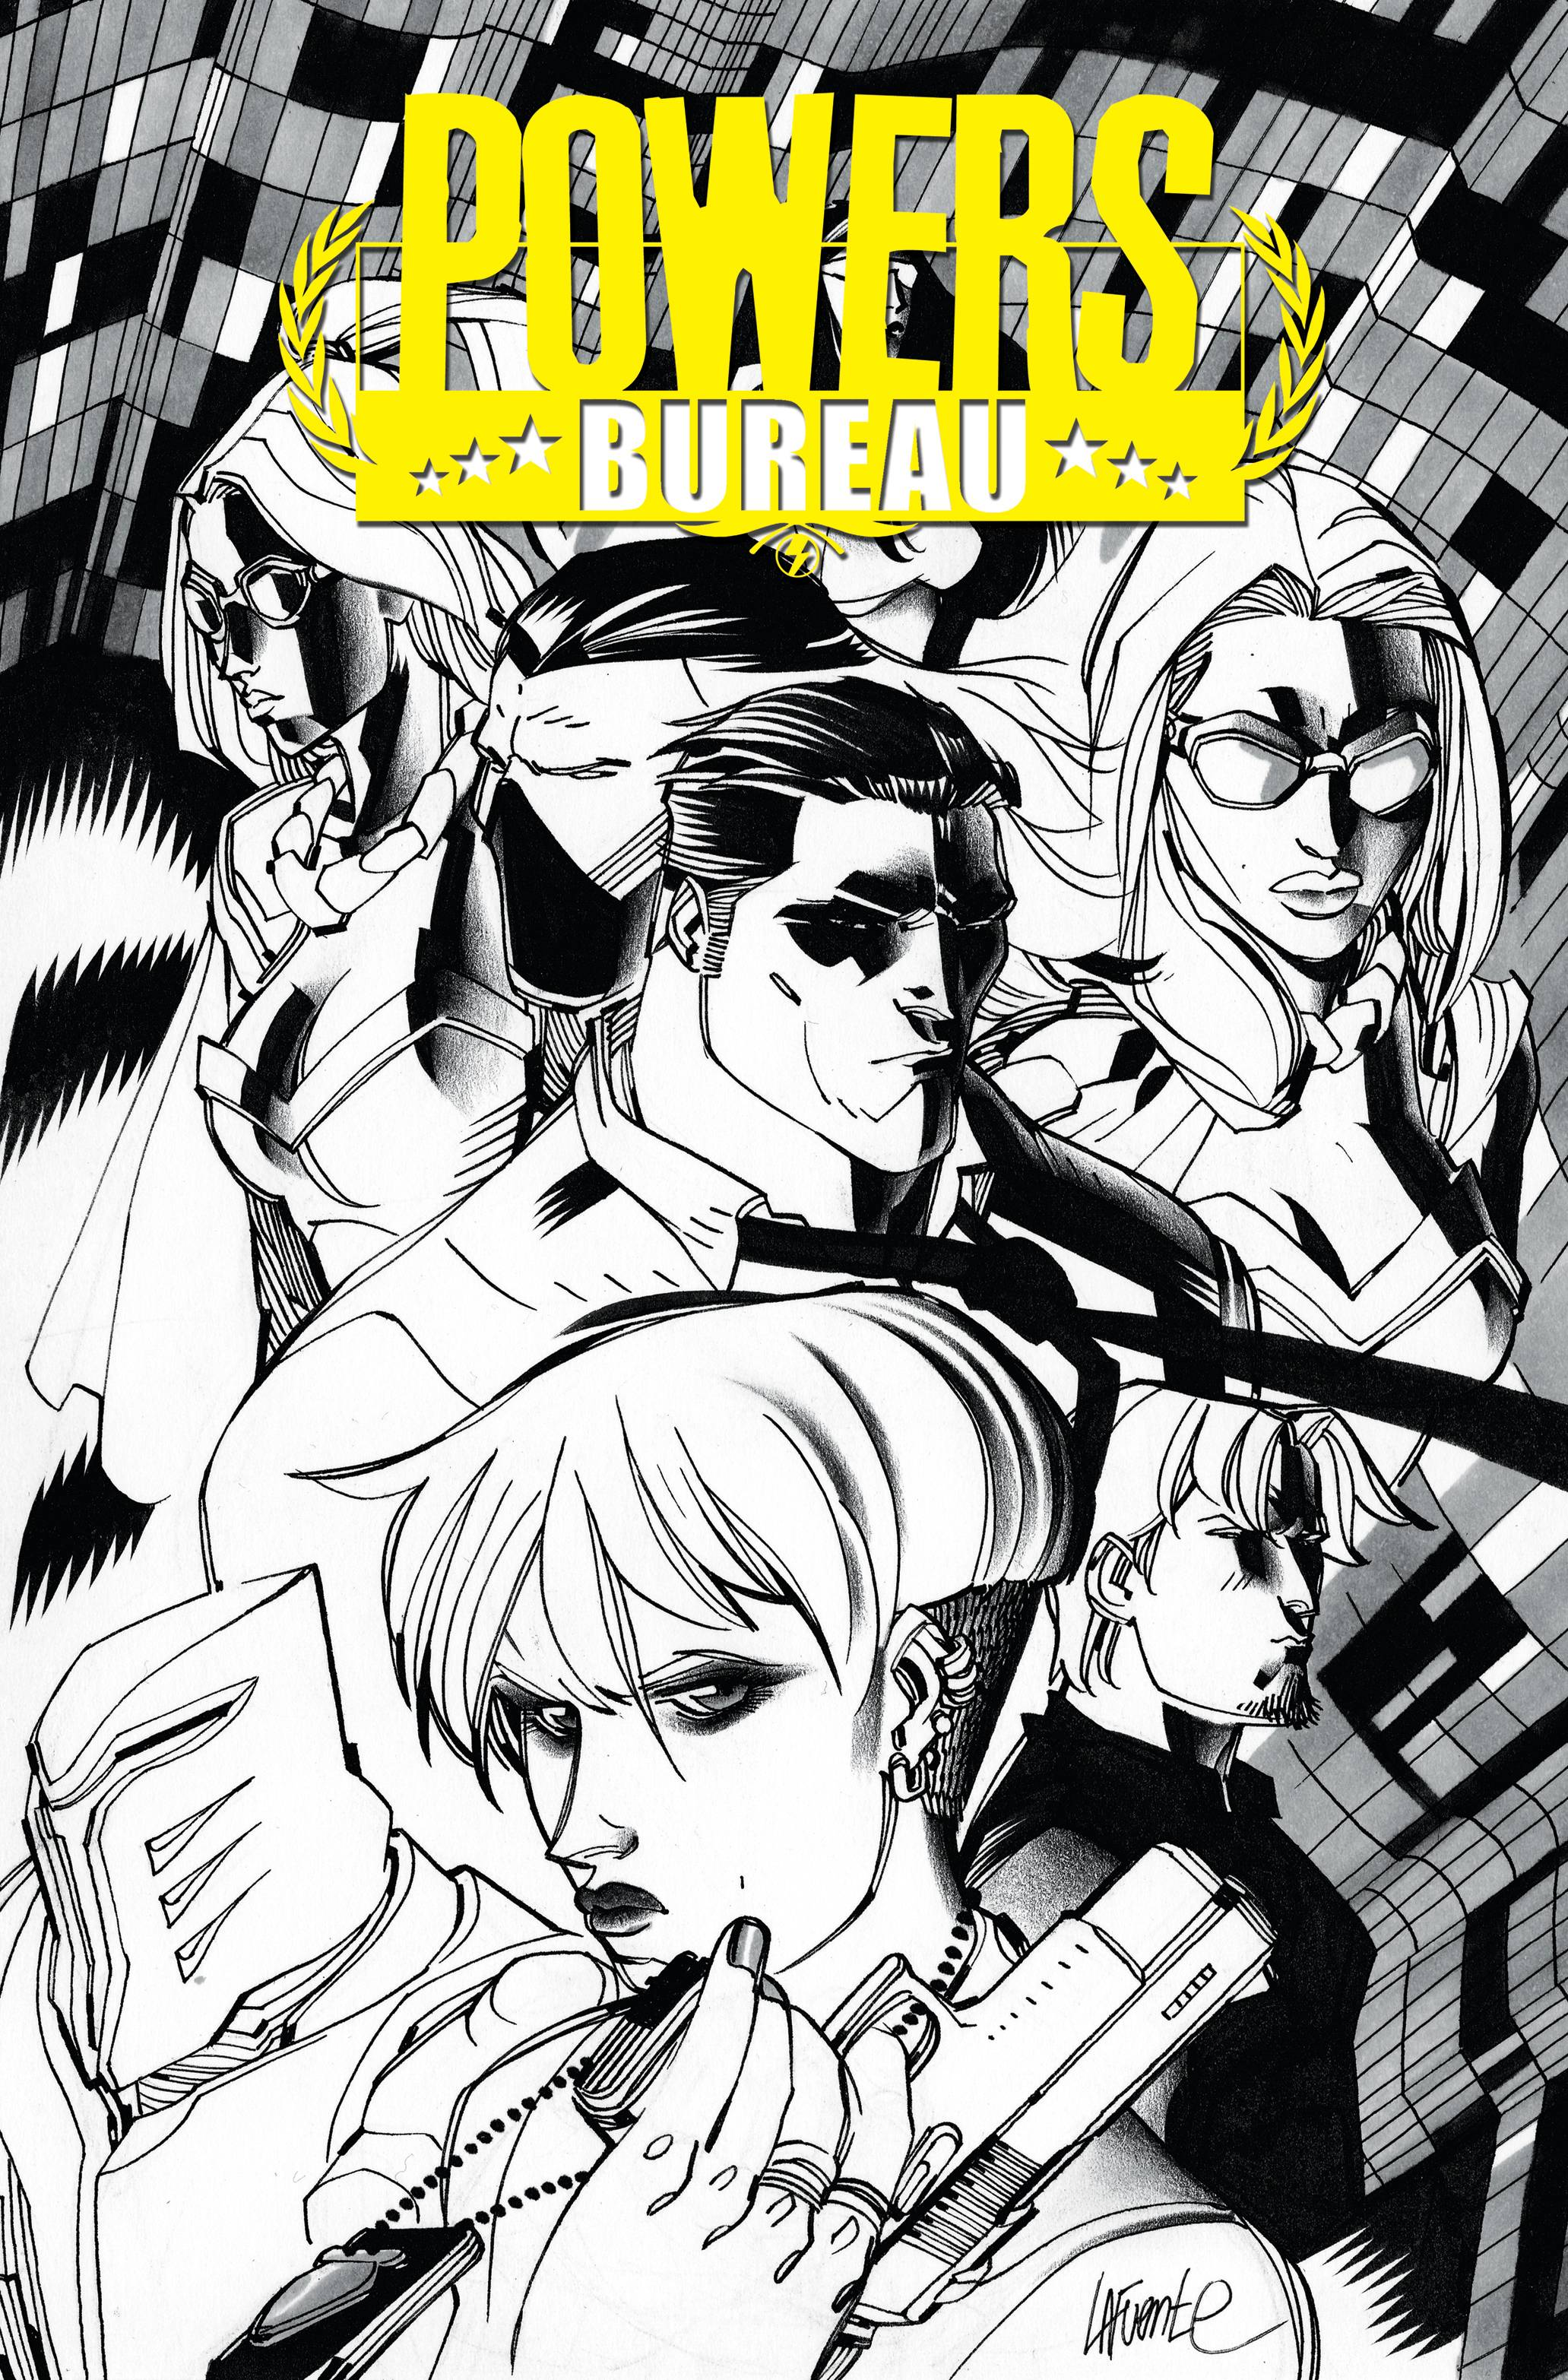 The comic speculator new comics roundup 02 13 2013 for Powers bureau issue 13